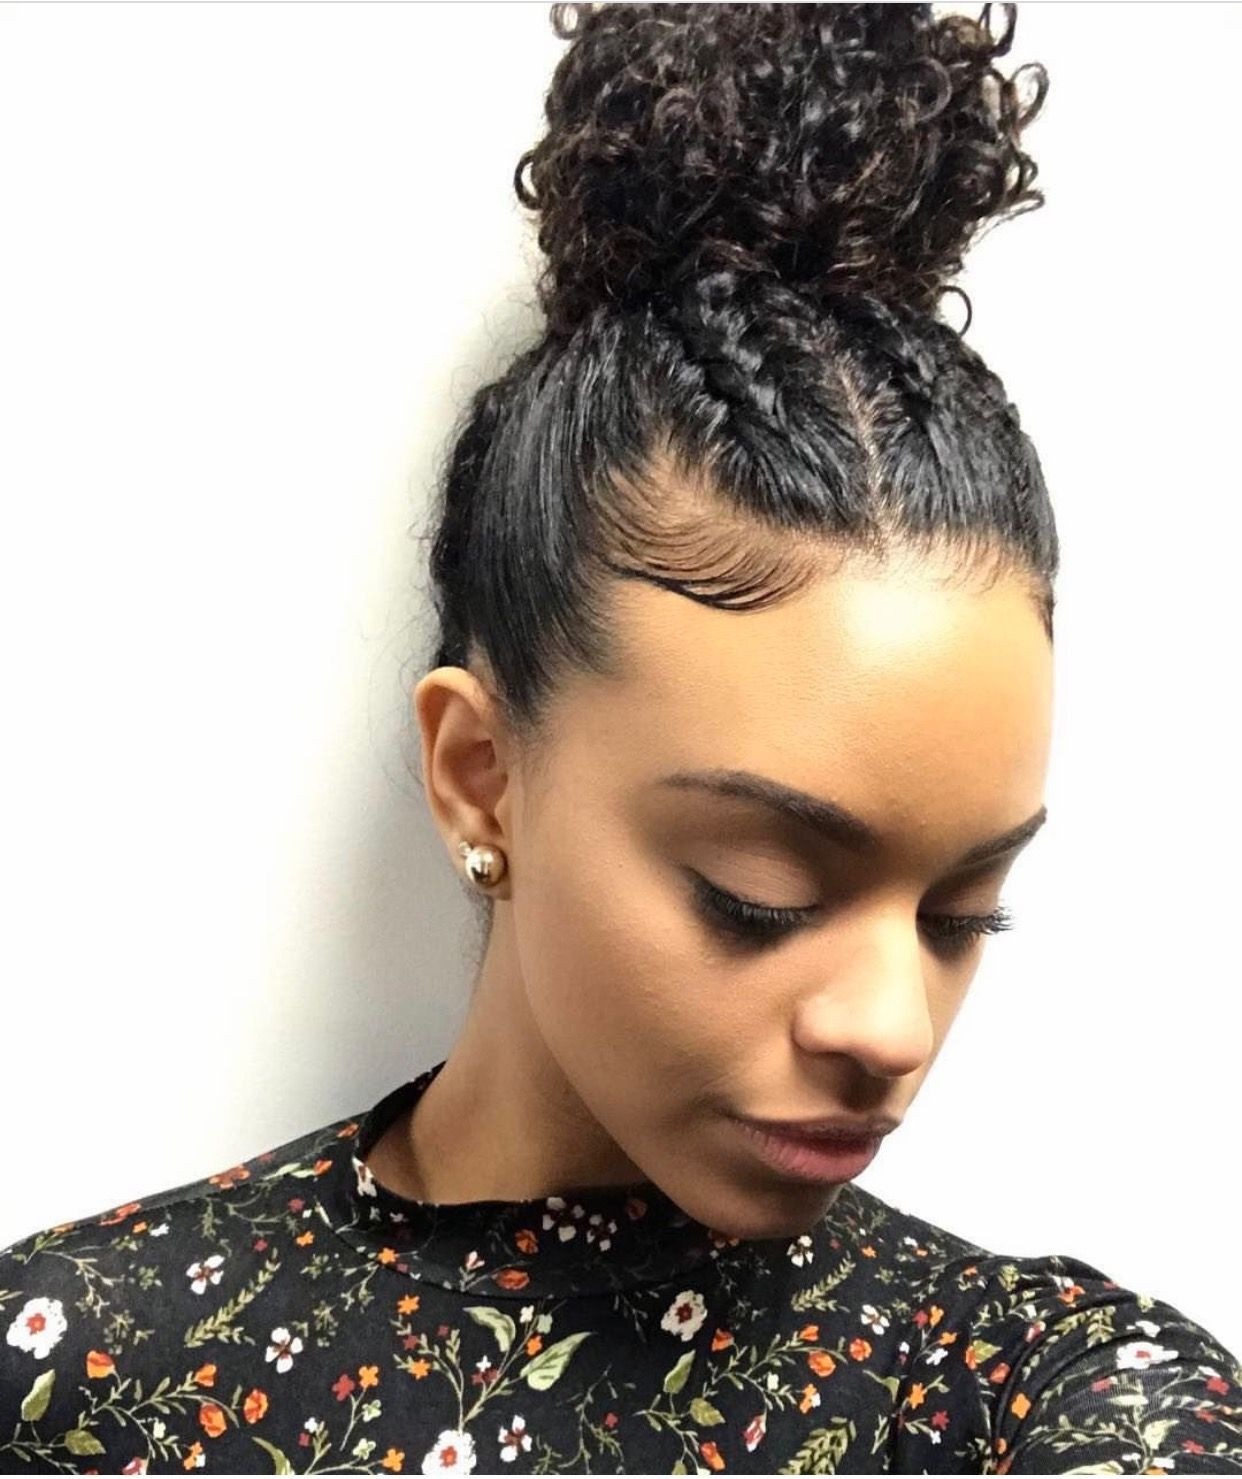 Best ideas about Cute Hairstyles For Mixed Girls . Save or Pin Pin by Obsessed Hair on Hair Tips & Hair Care Now.